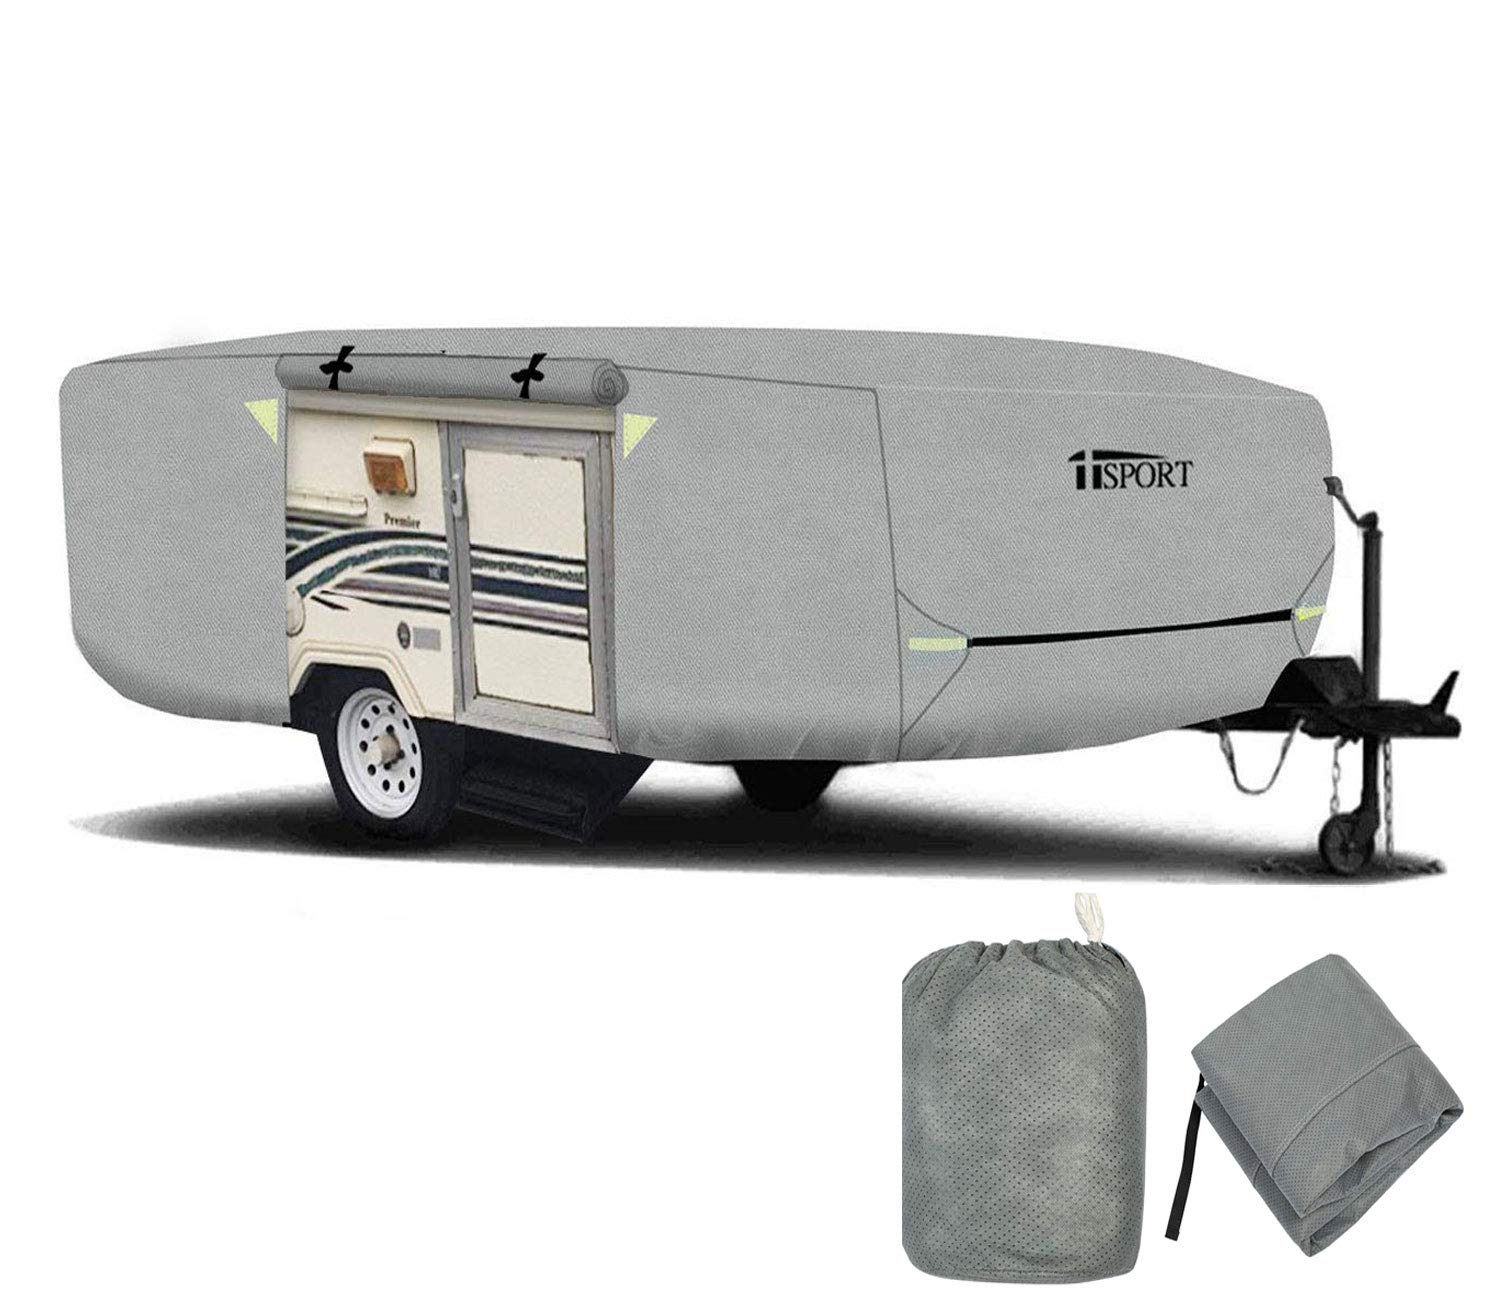 iiSPORT Extra-Thick 4 Layers Pop-Up//Folding Camper Trailer Cover Fits 10-12 Long Zipper Access Ripstop Anti-UV RV Covers w//Air Vent System